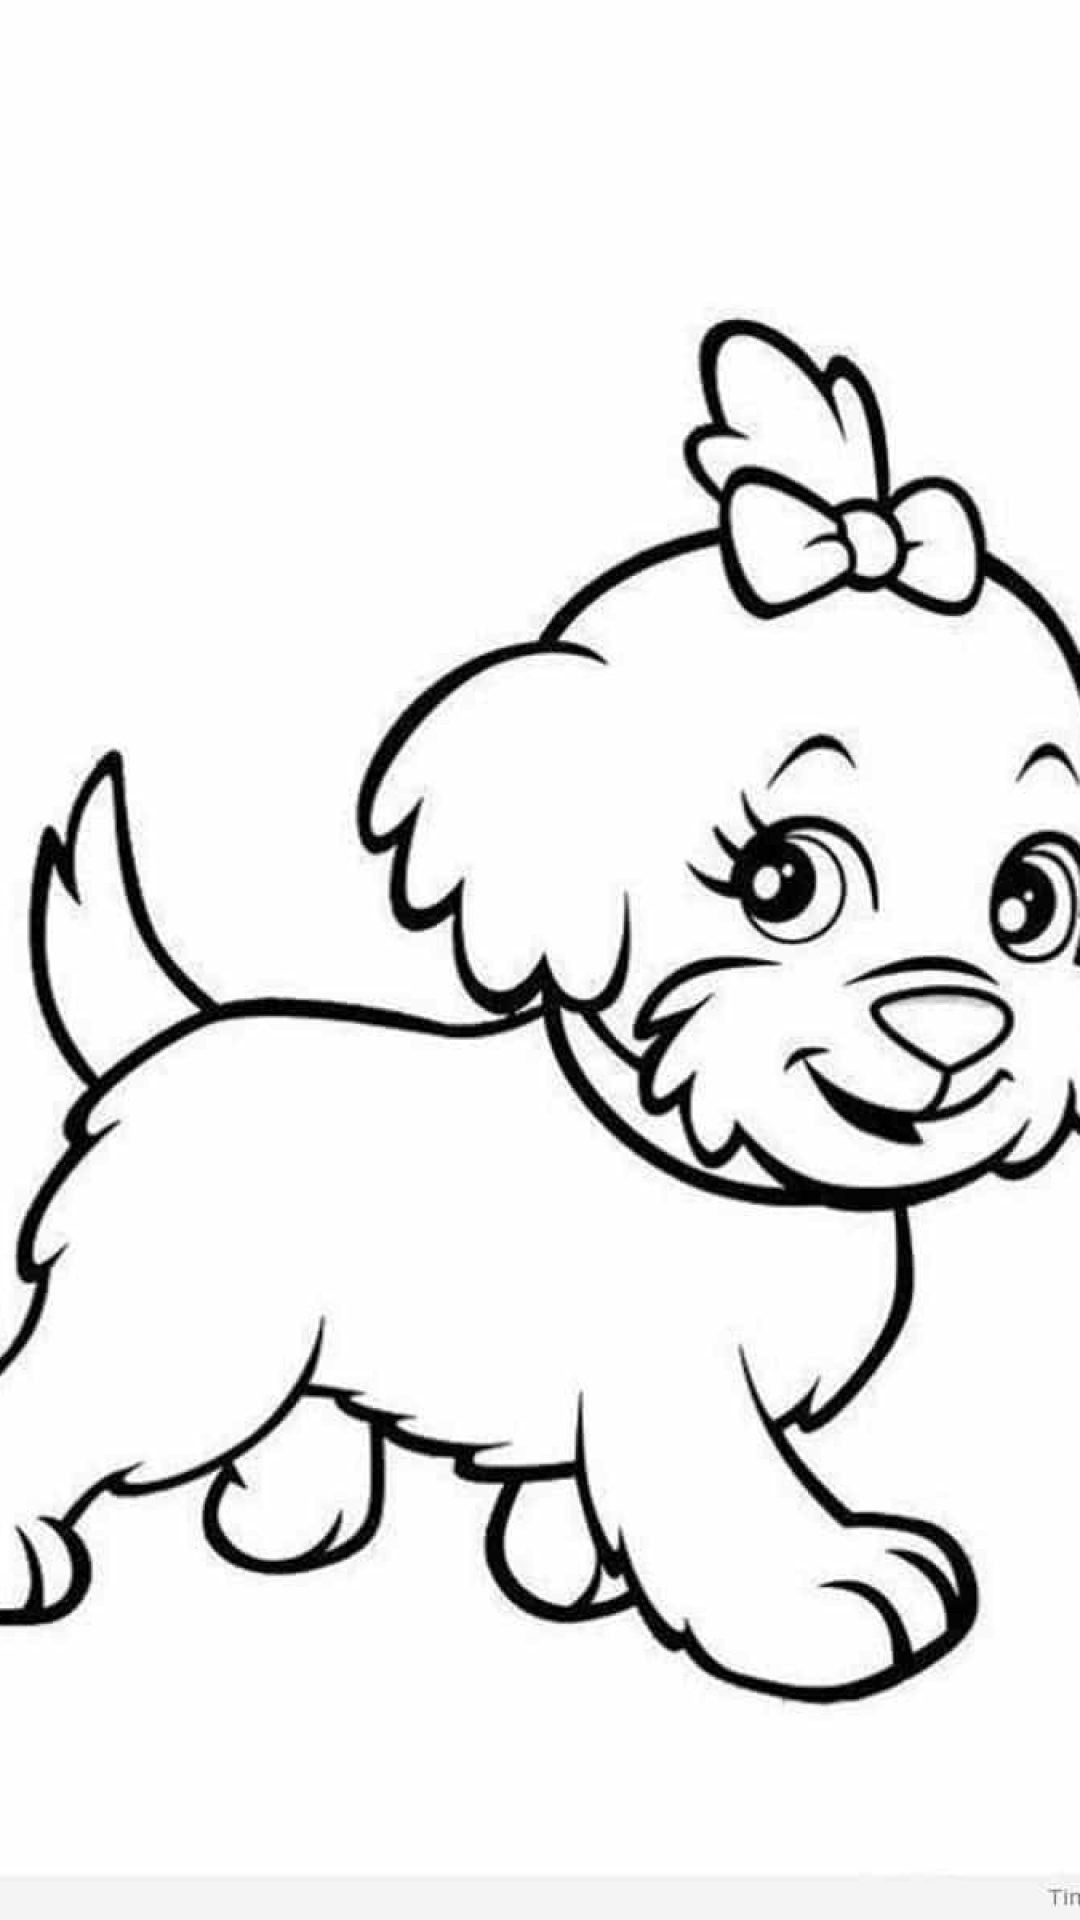 1080x1920 Coloring Pages Of Guide Dogs Fresh Service Dog